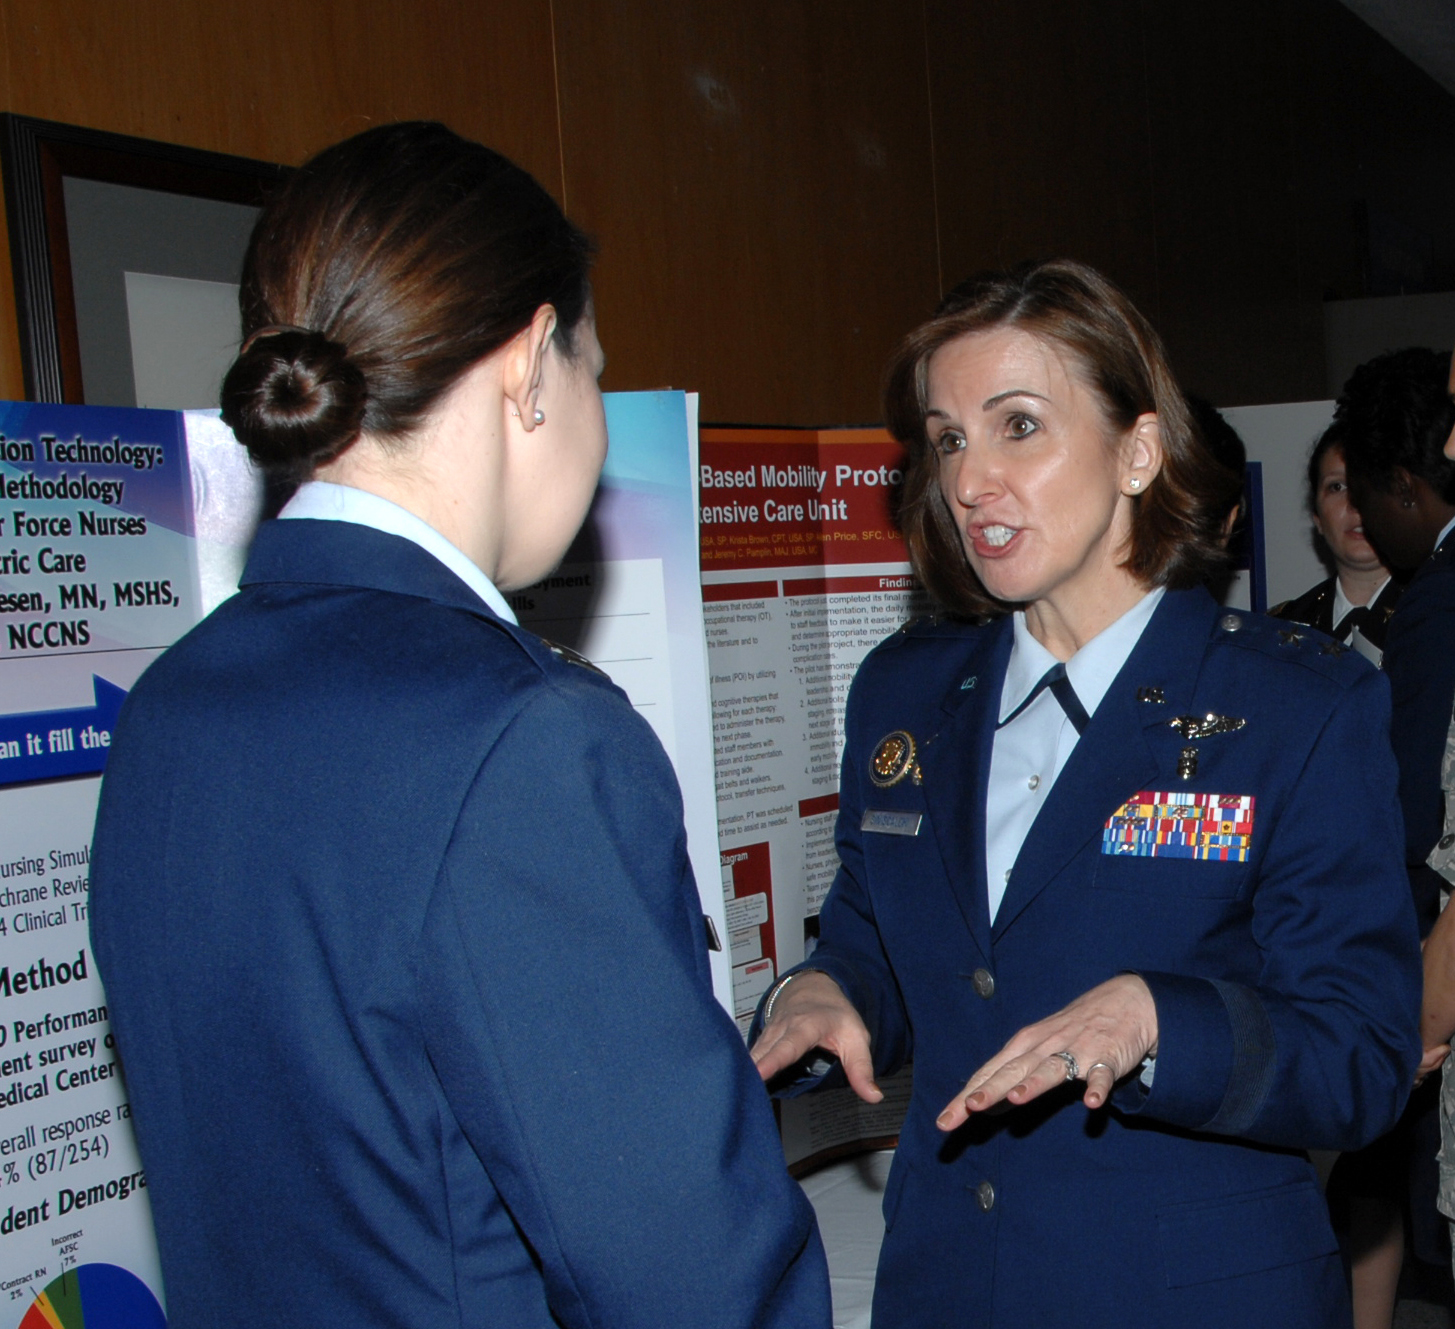 Medical Chart Review Jobs From Home: Air Force nursing: Creating a culture of inquiry e Air Force ,Chart